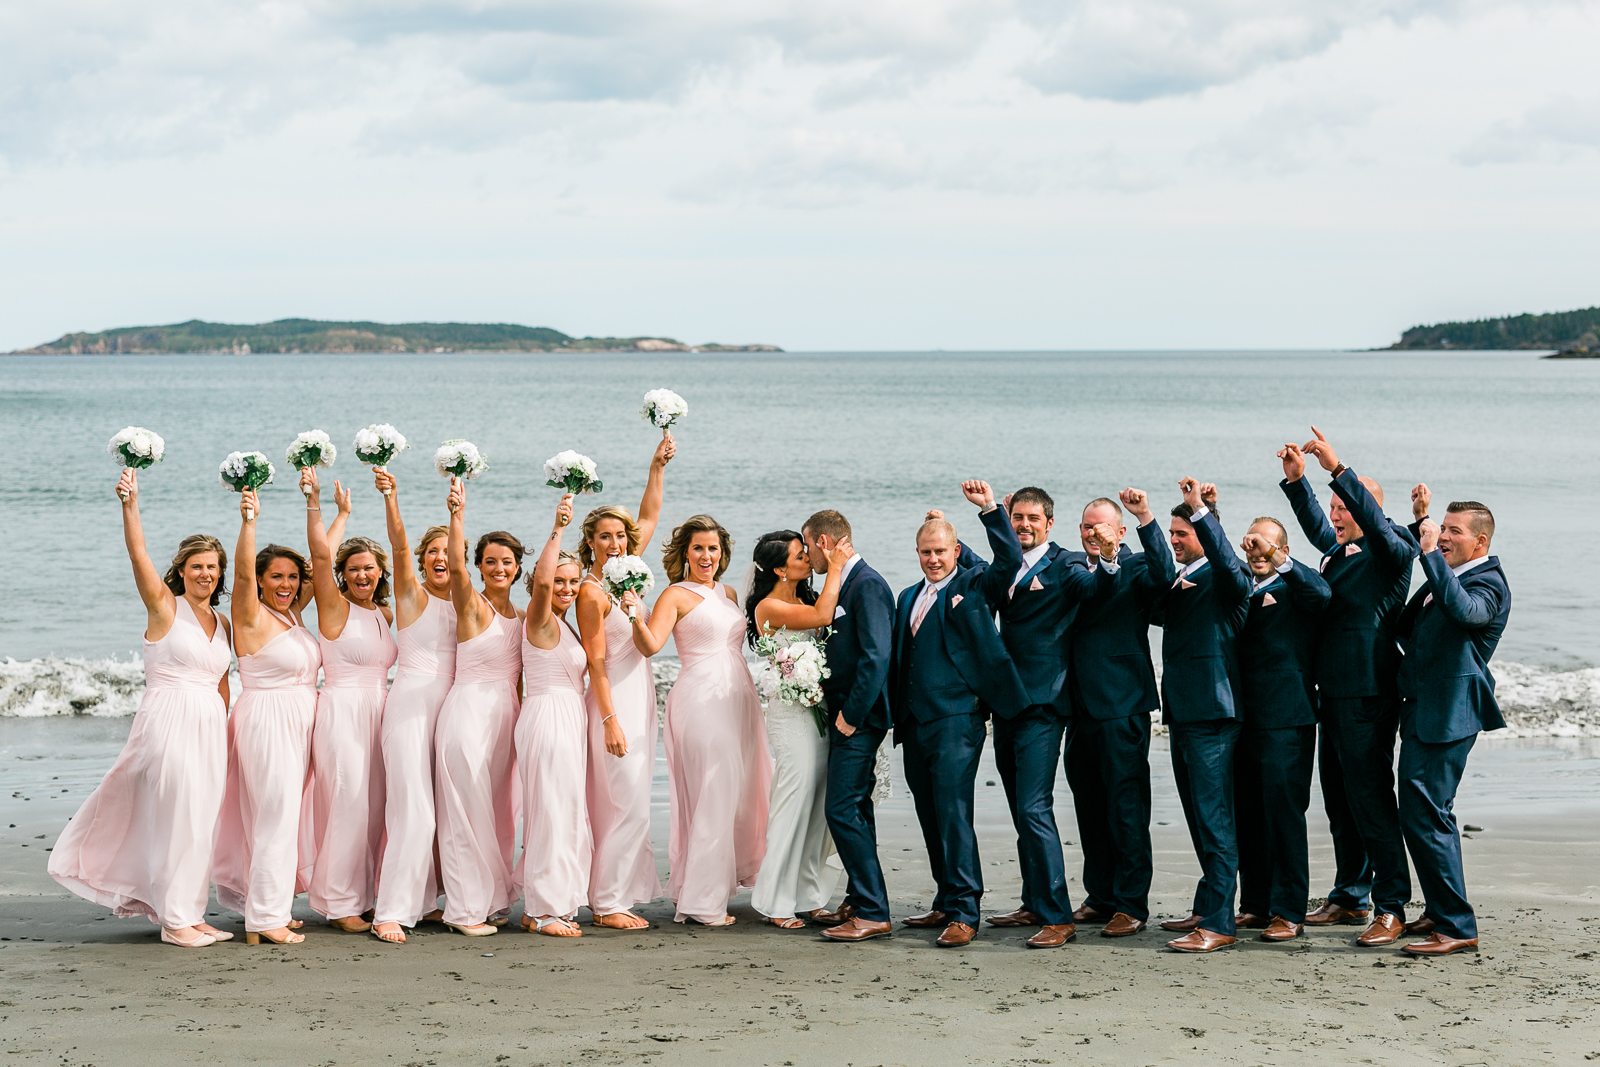 0044st-johns-newfoundland-wedding-photographer-glendenning.jpg